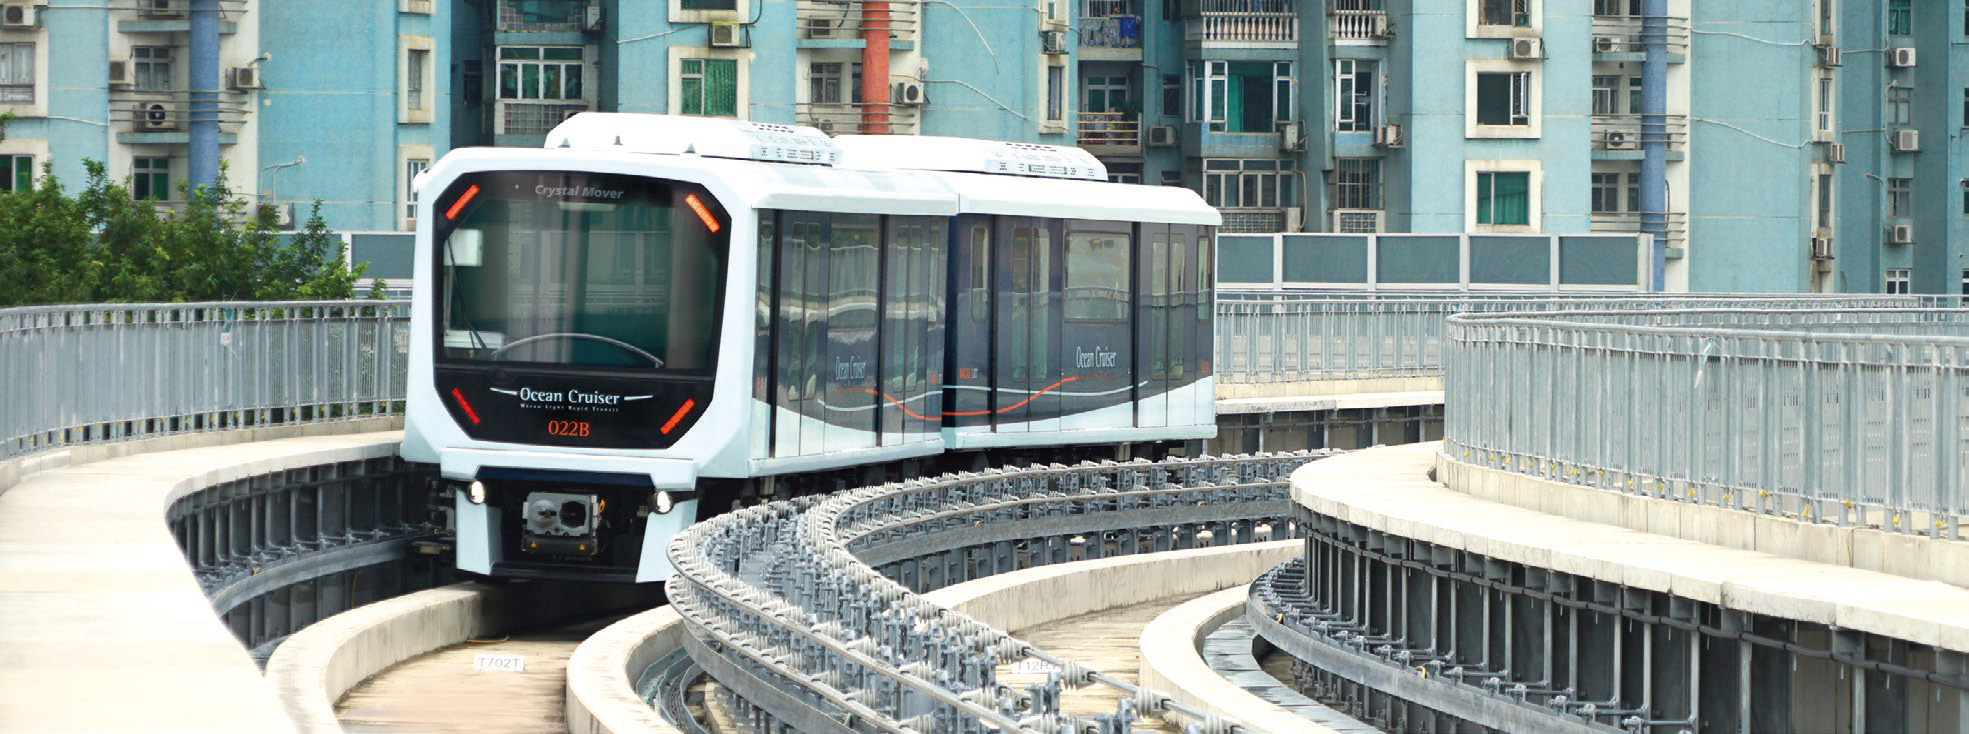 Macau Light Rapid Transit (LRT)